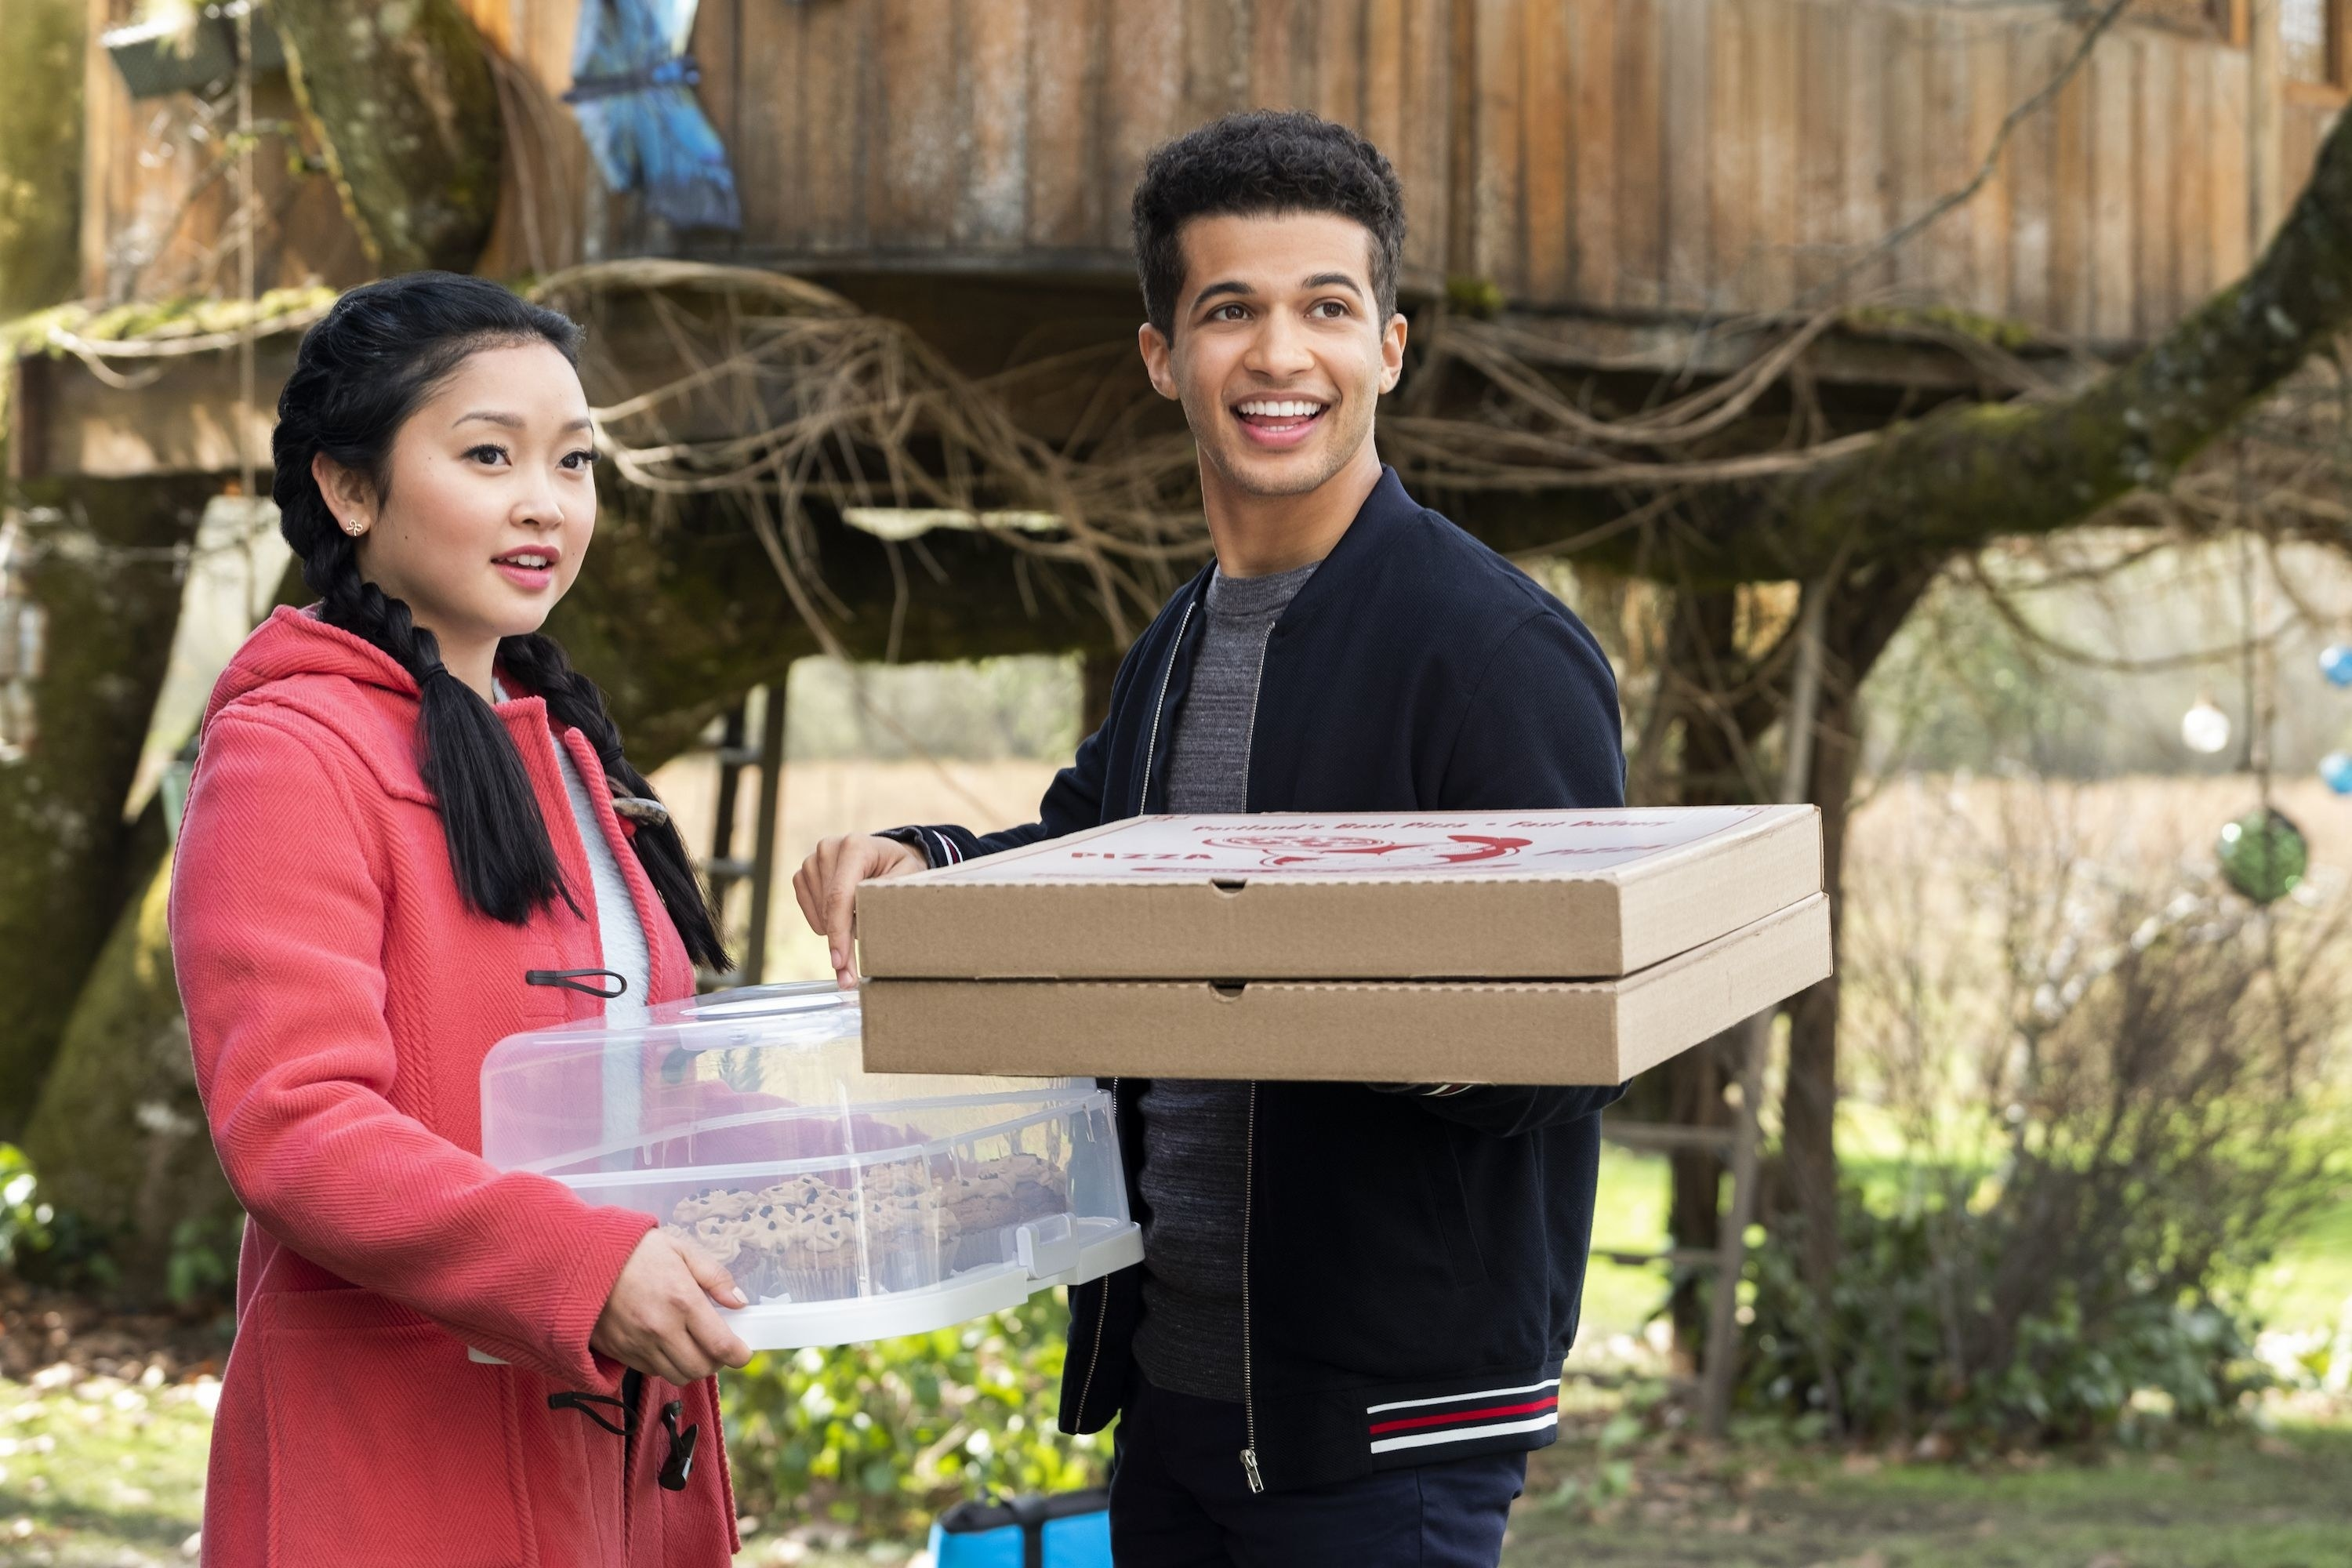 John and Lara stand together holding pizza and baked goods